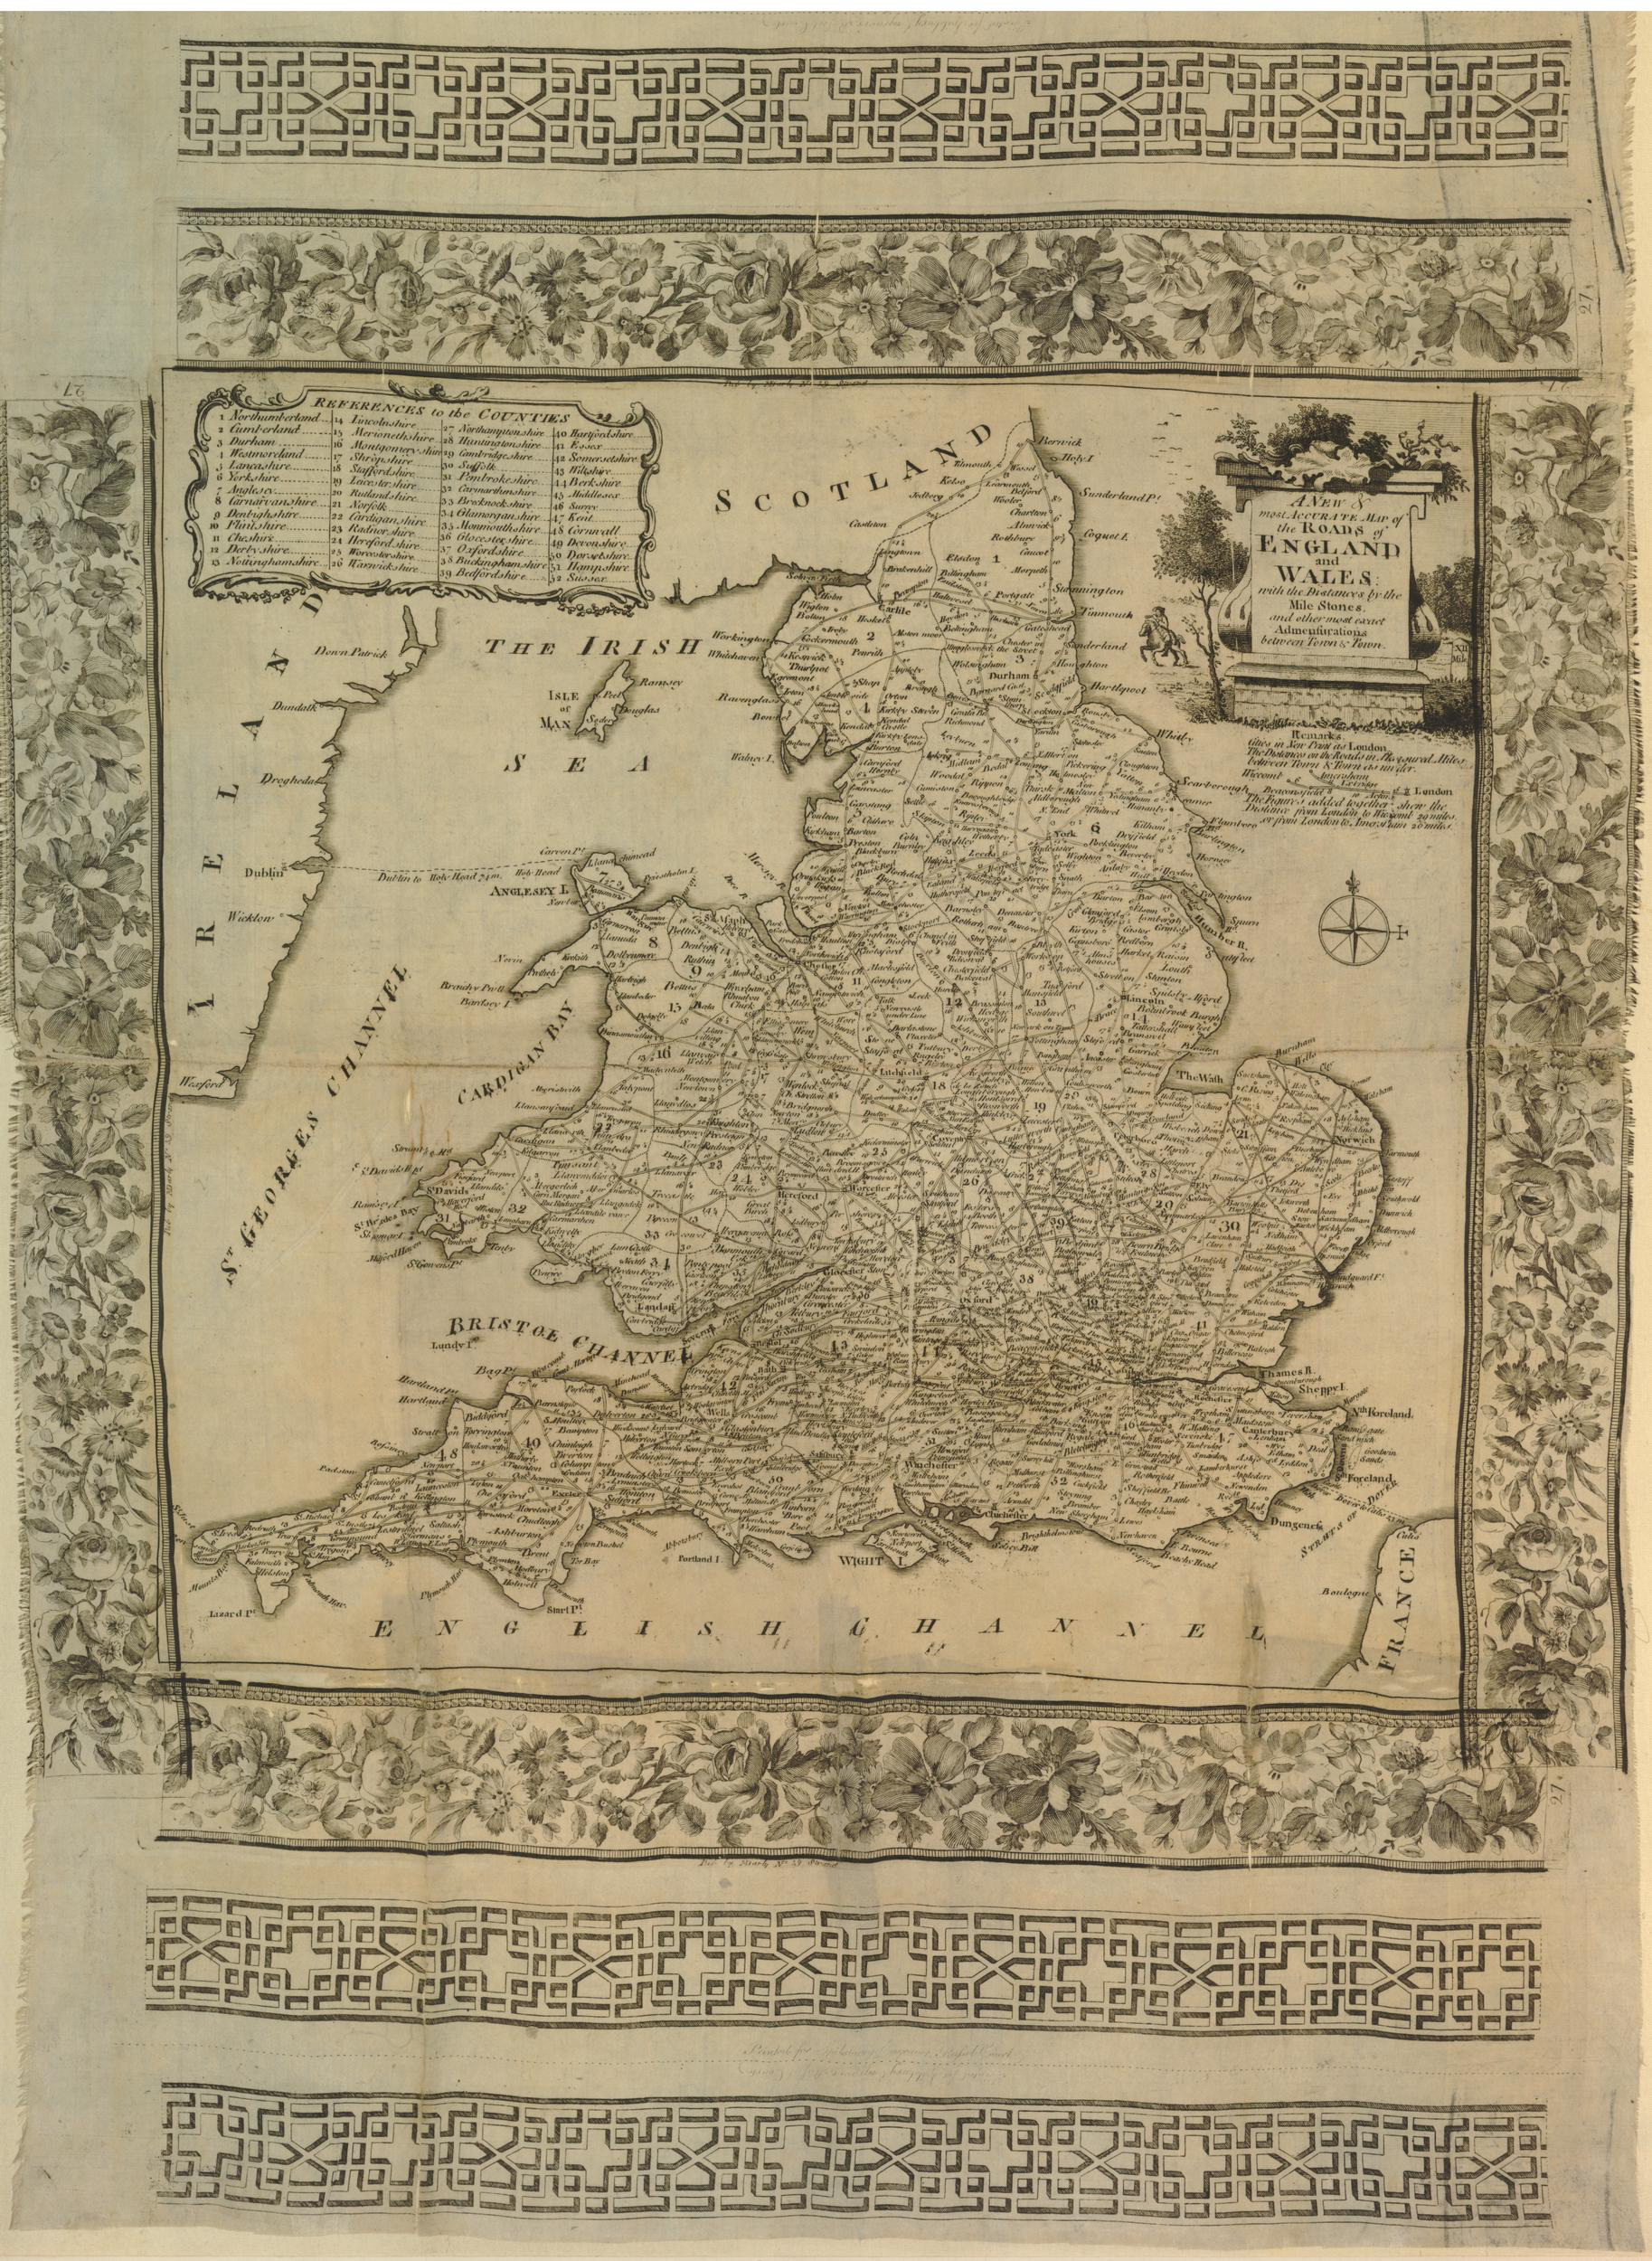 39 Matthew or Matthias Darly pub A new and most accurate map of the roads of England and Wale on silk also pub John Spilsbury 1752to78 BM